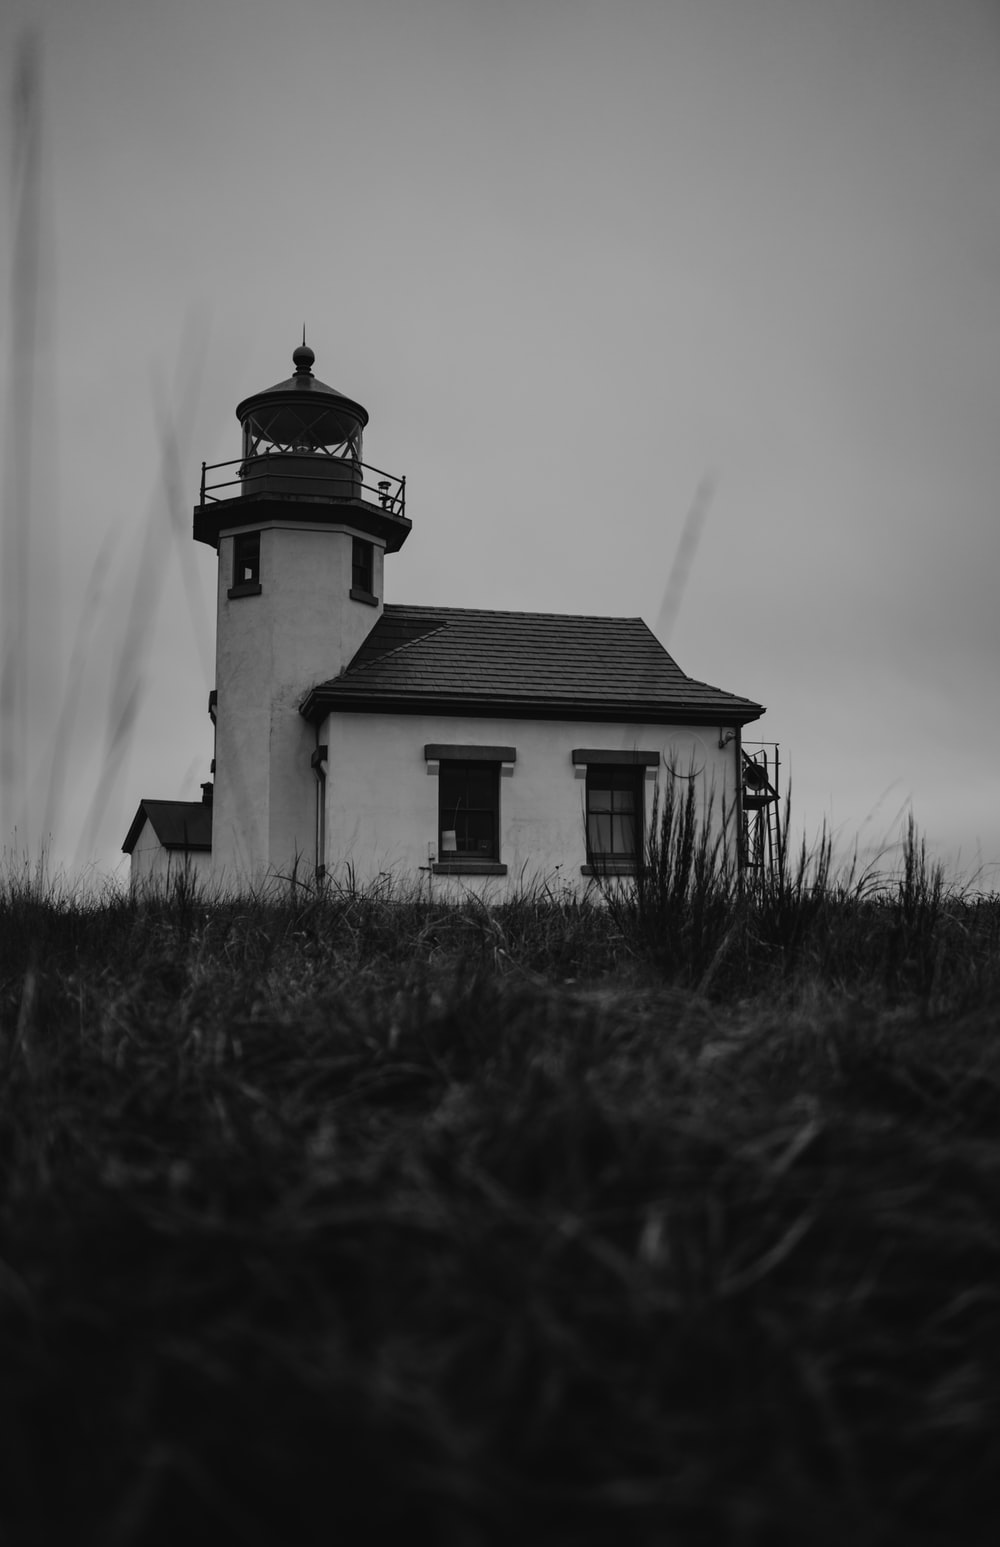 grayscale photo of lighthouse near grass field